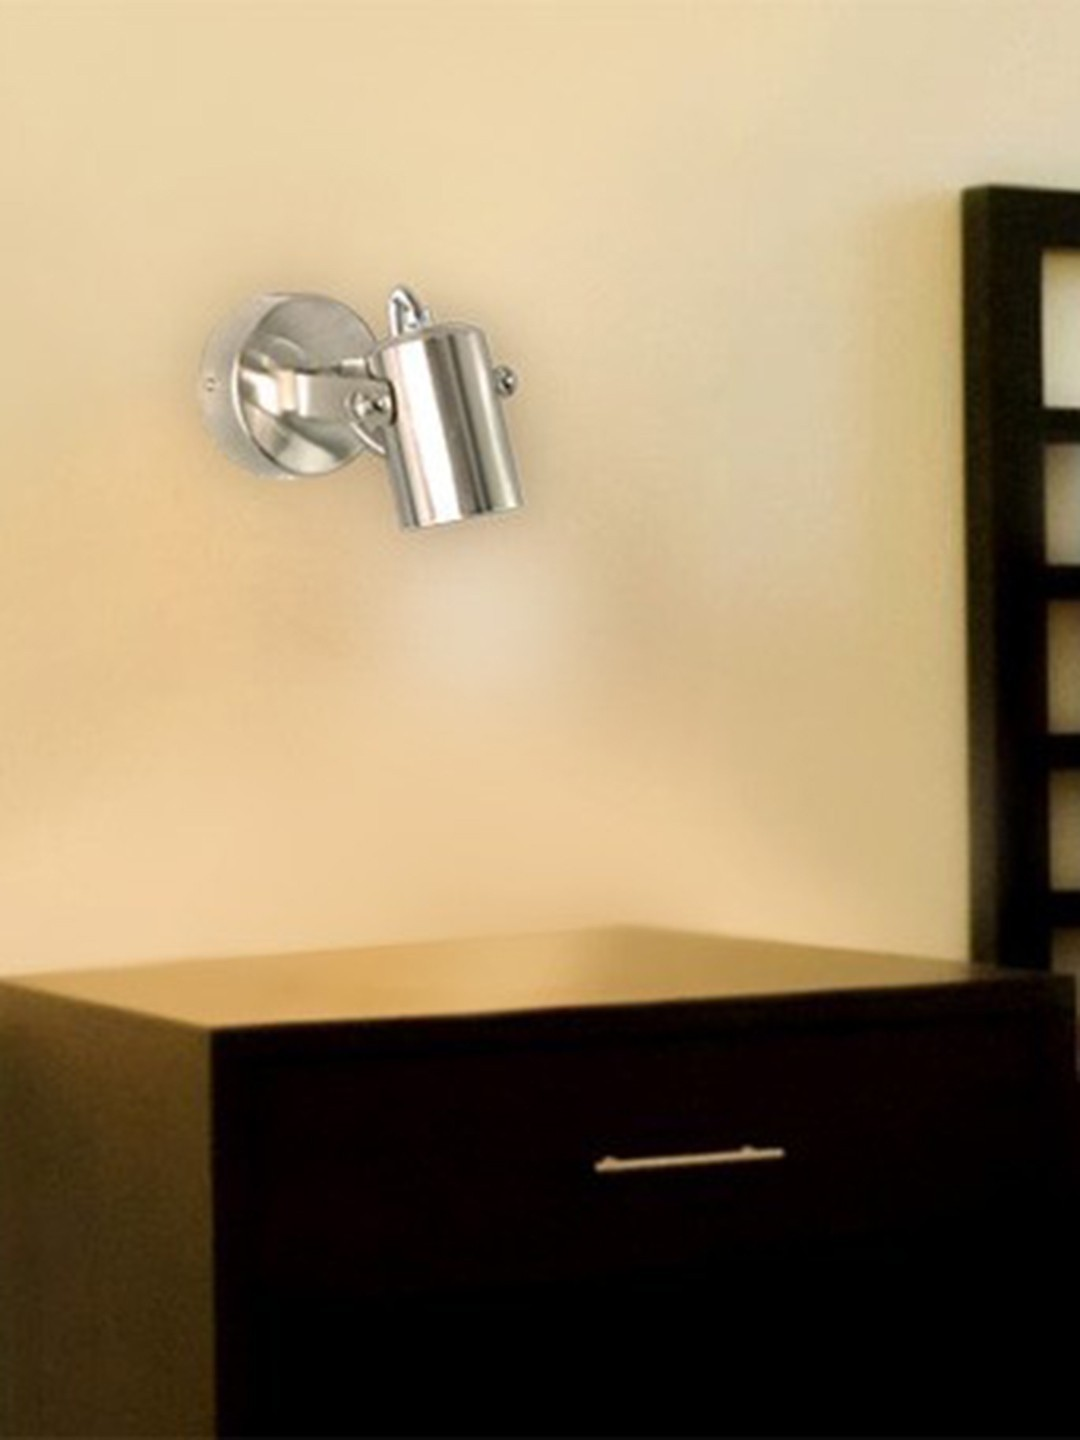 Satin Steel Bedside Cylindrical SpotLED Wall Lamp